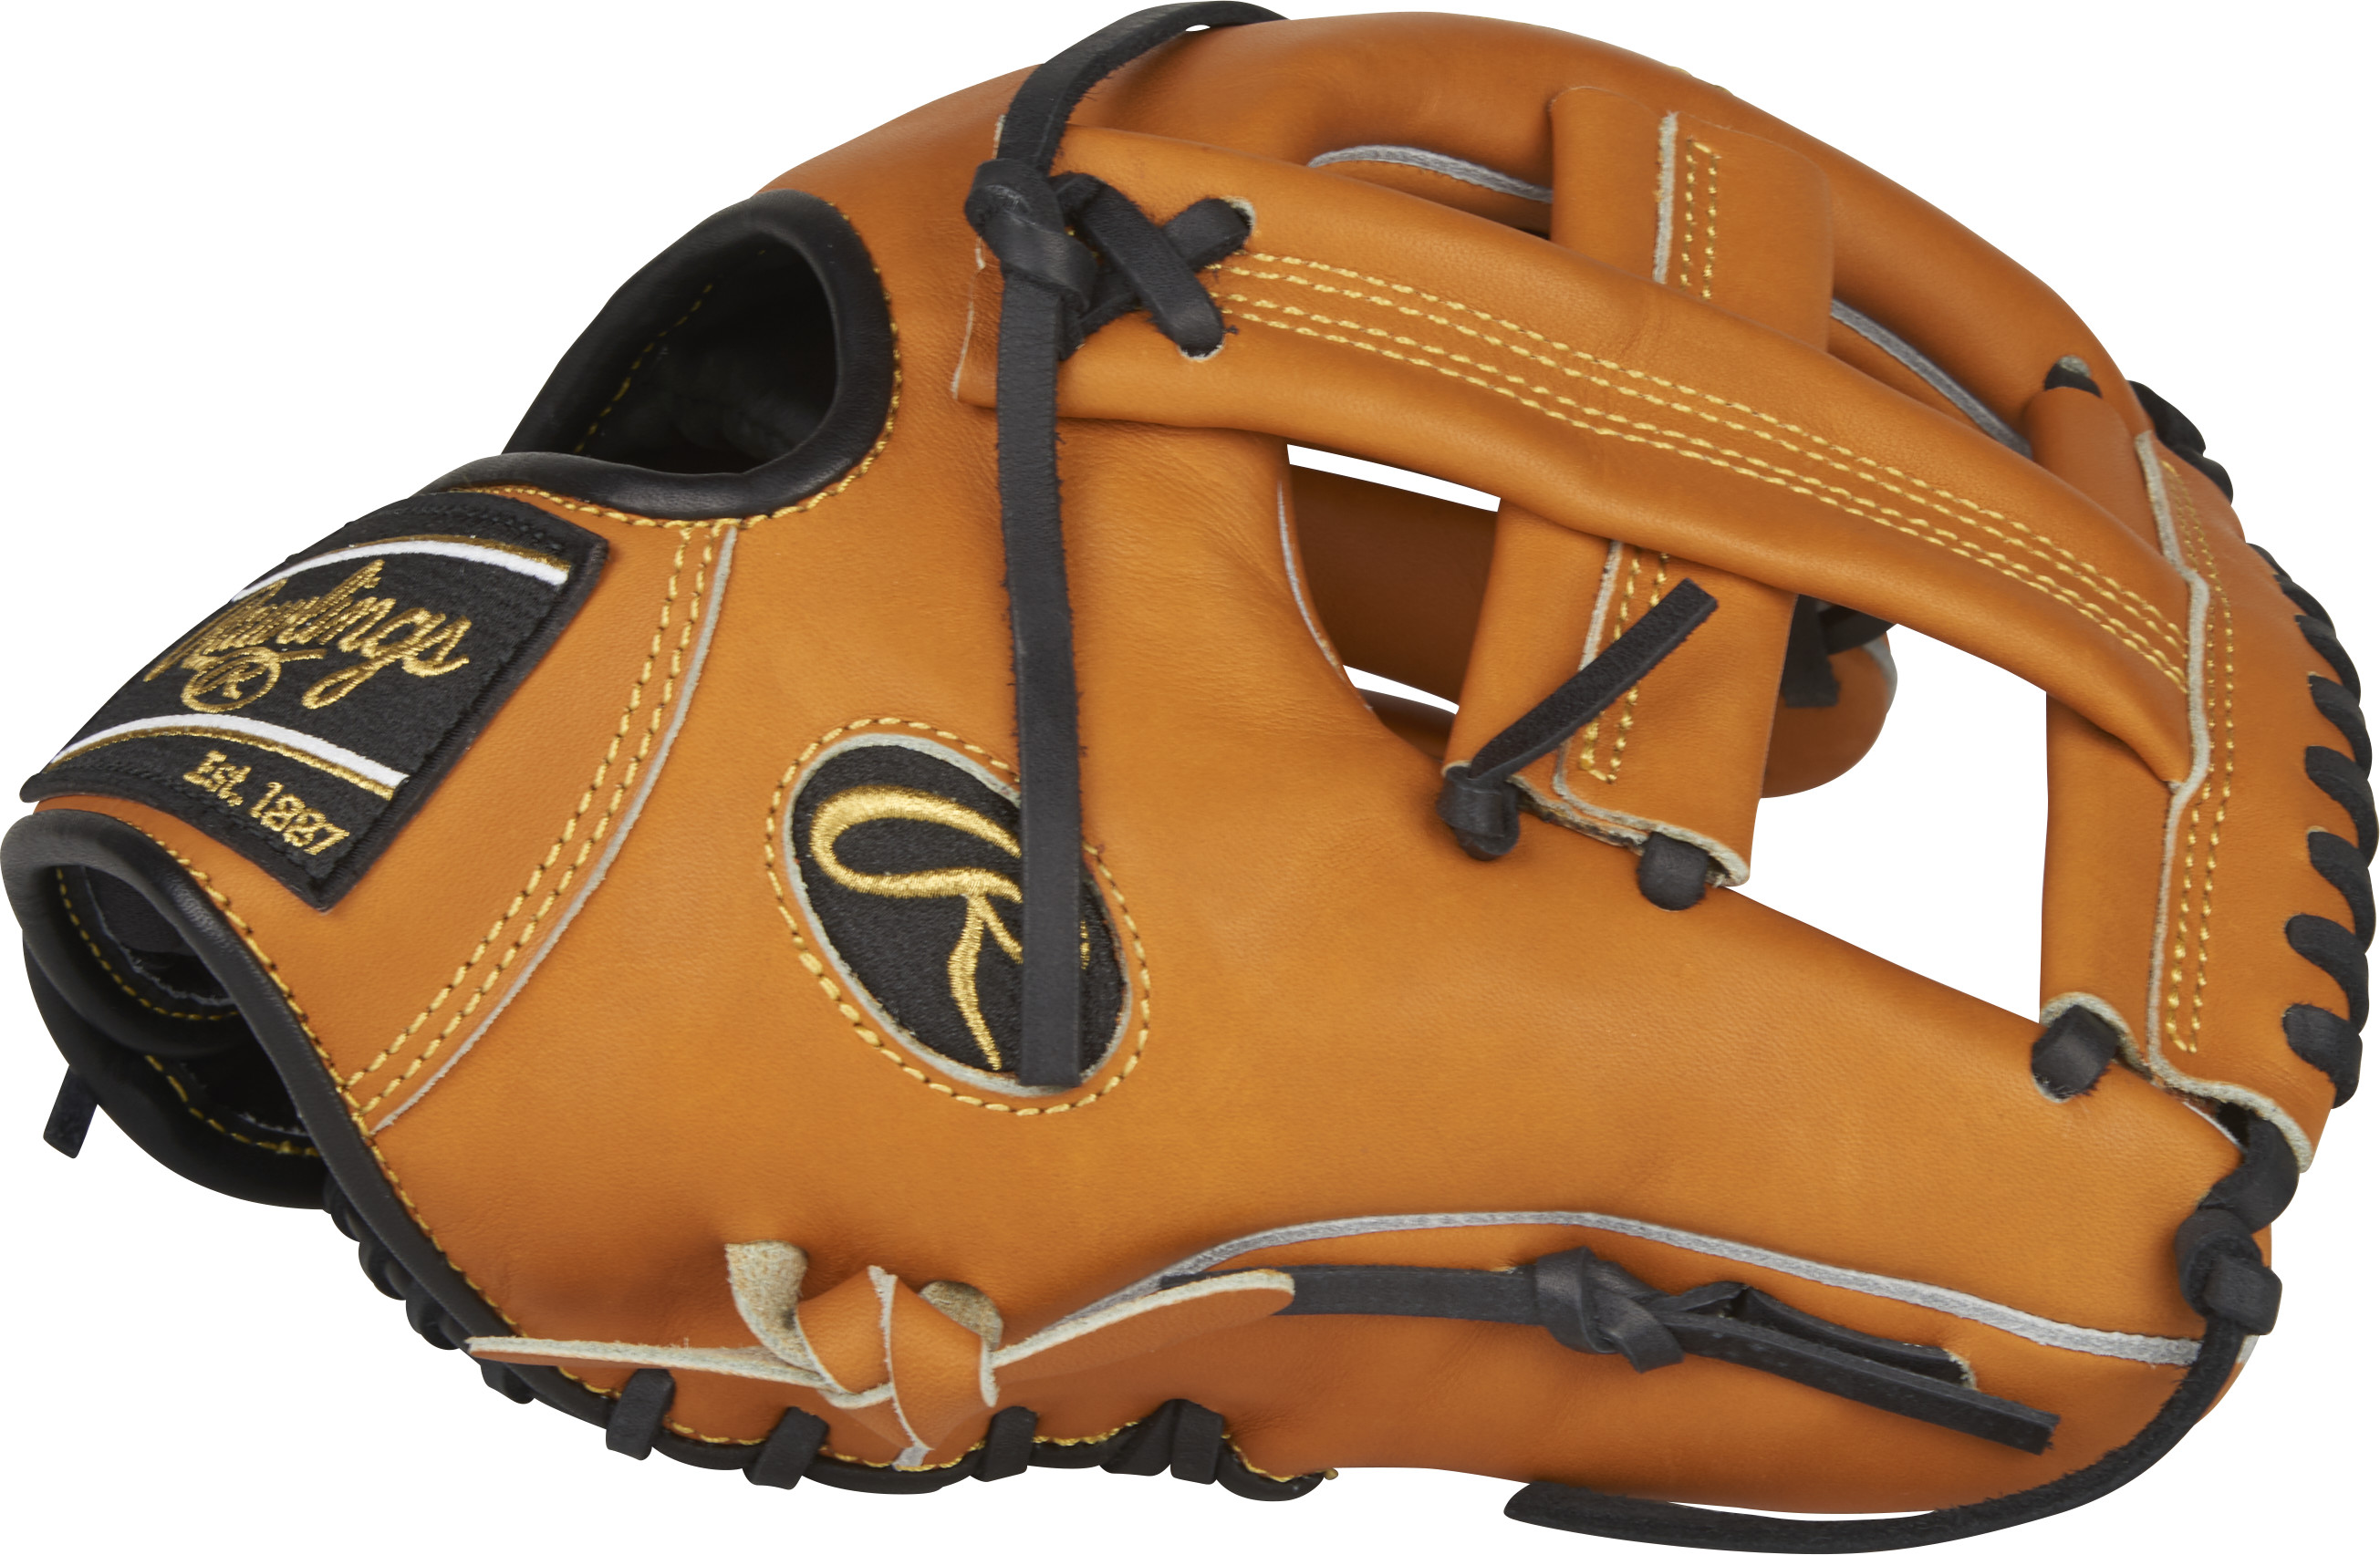 http://www.bestbatdeals.com/images/gloves/rawlings/PRO204-20T-3.jpg